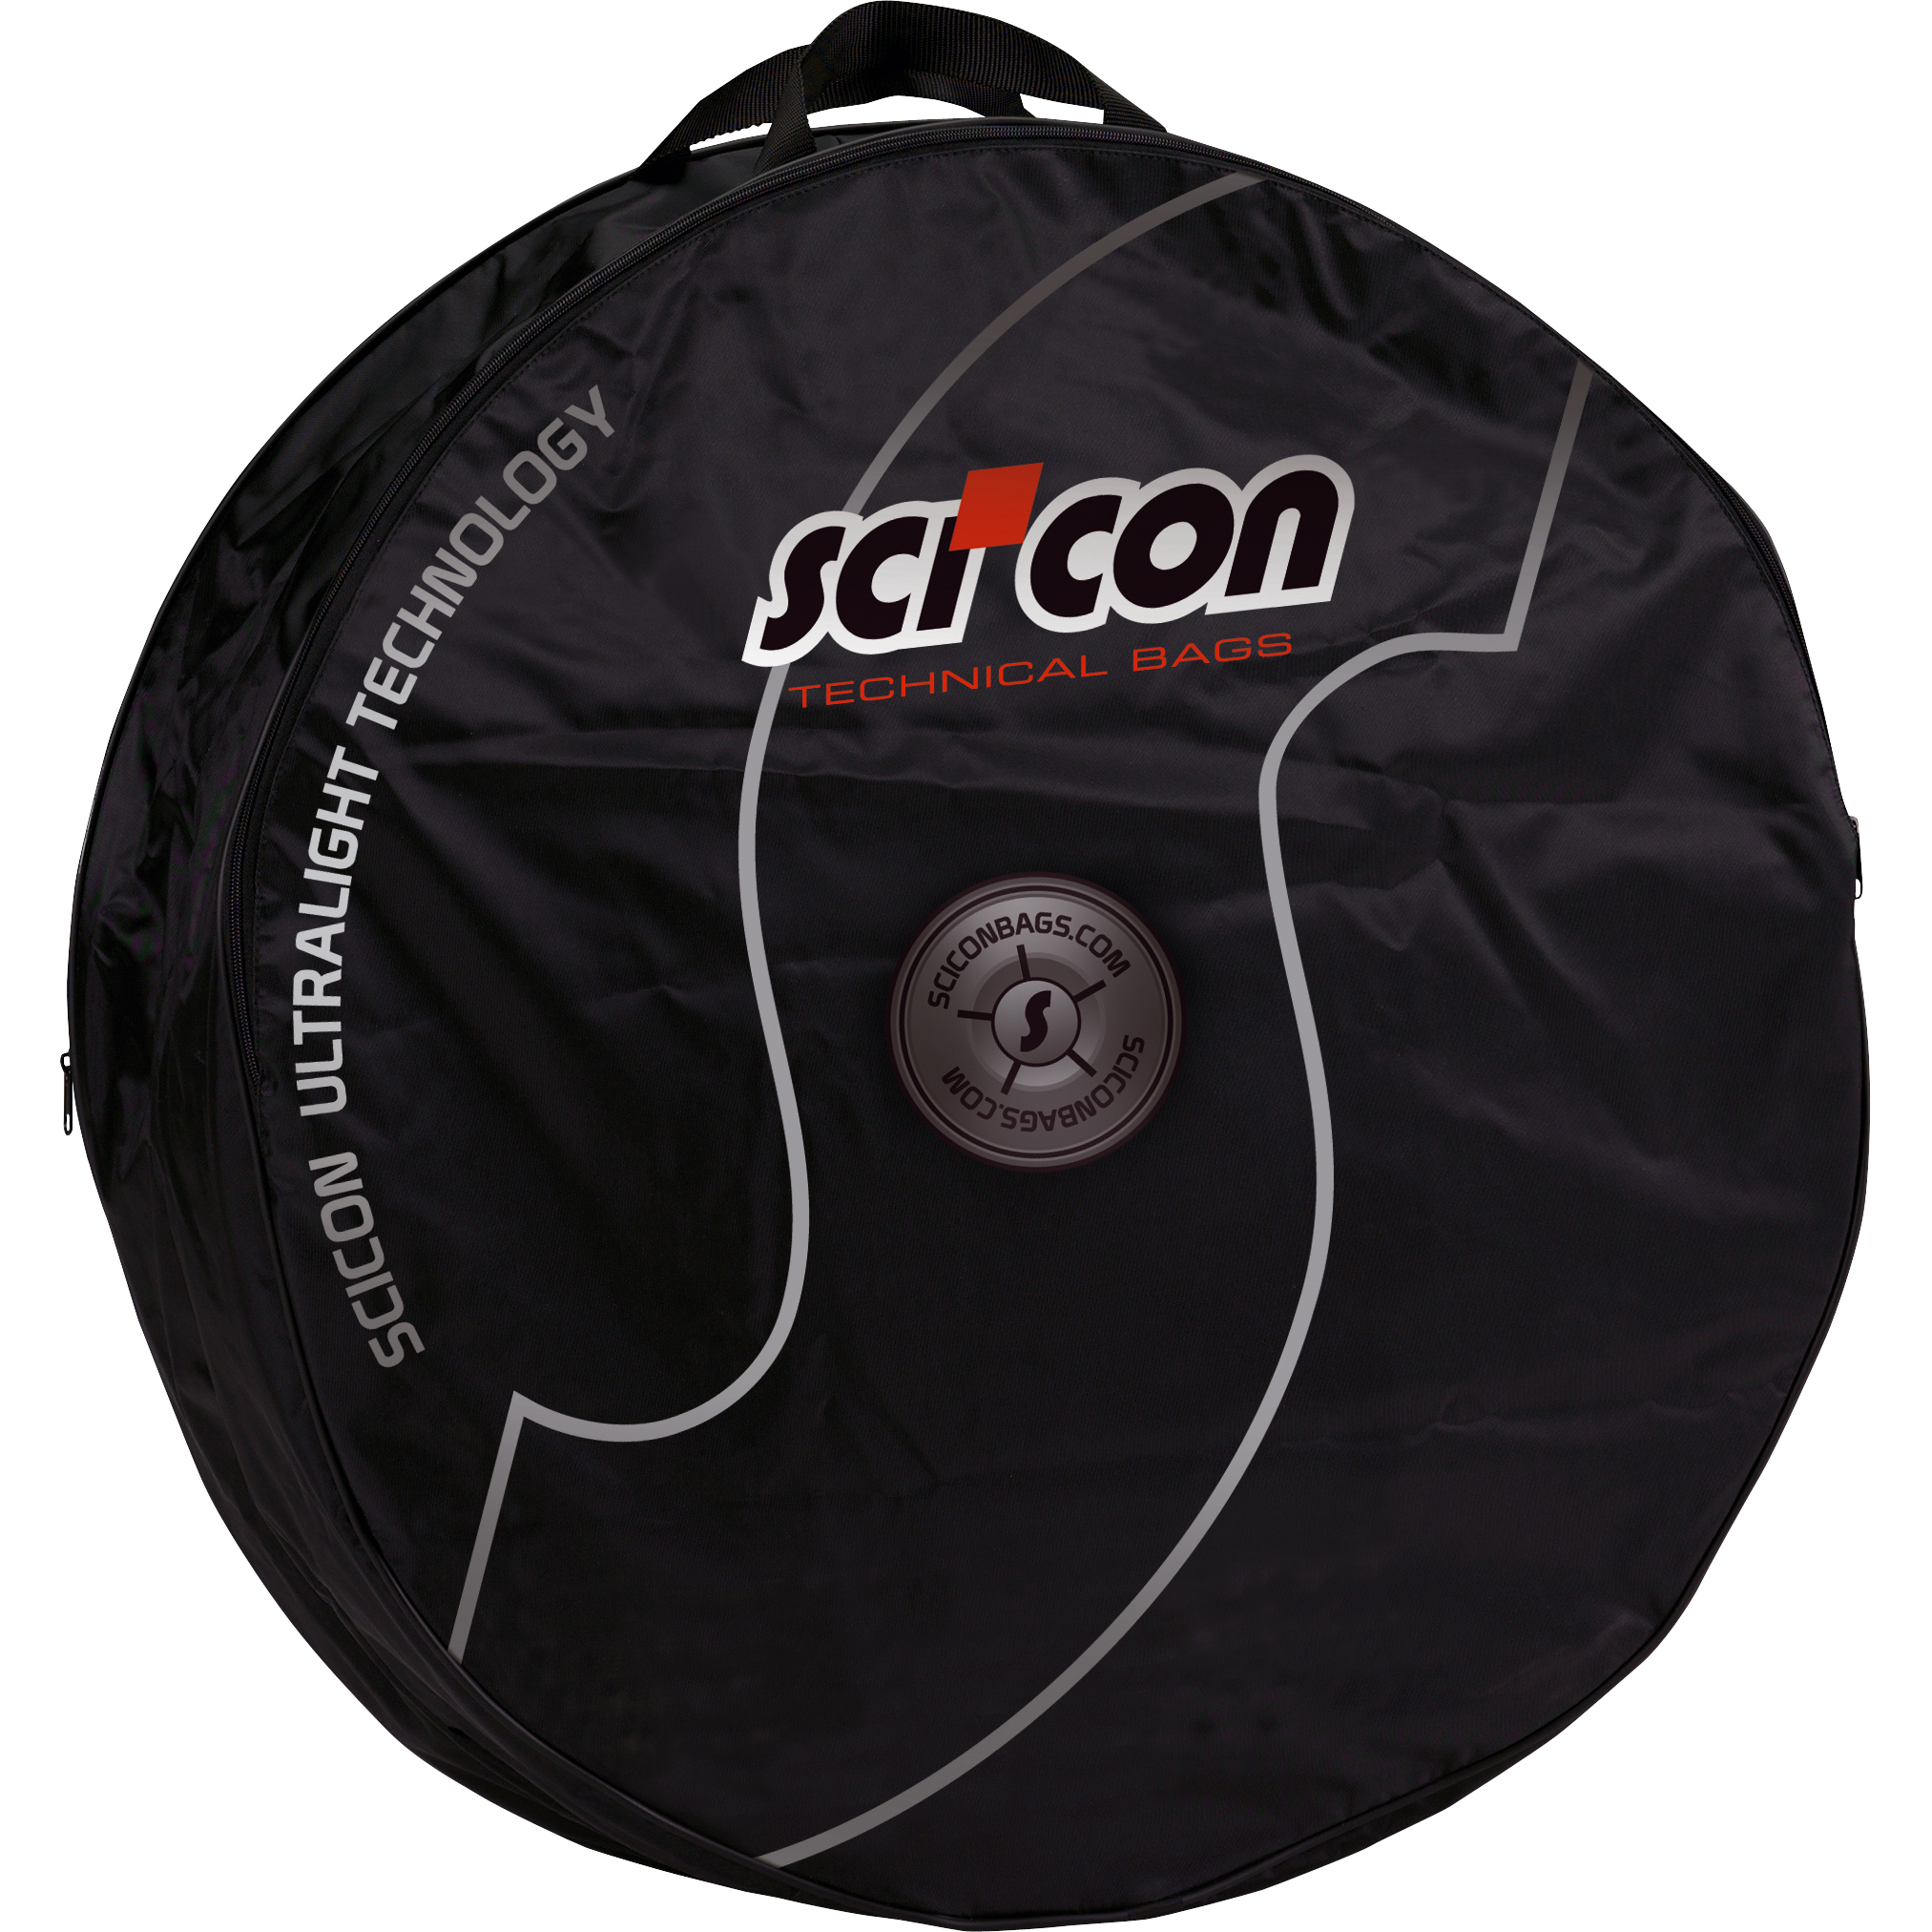 Wiggle | Scicon Double Wheel Bag | Bike Bags | Wheel bags